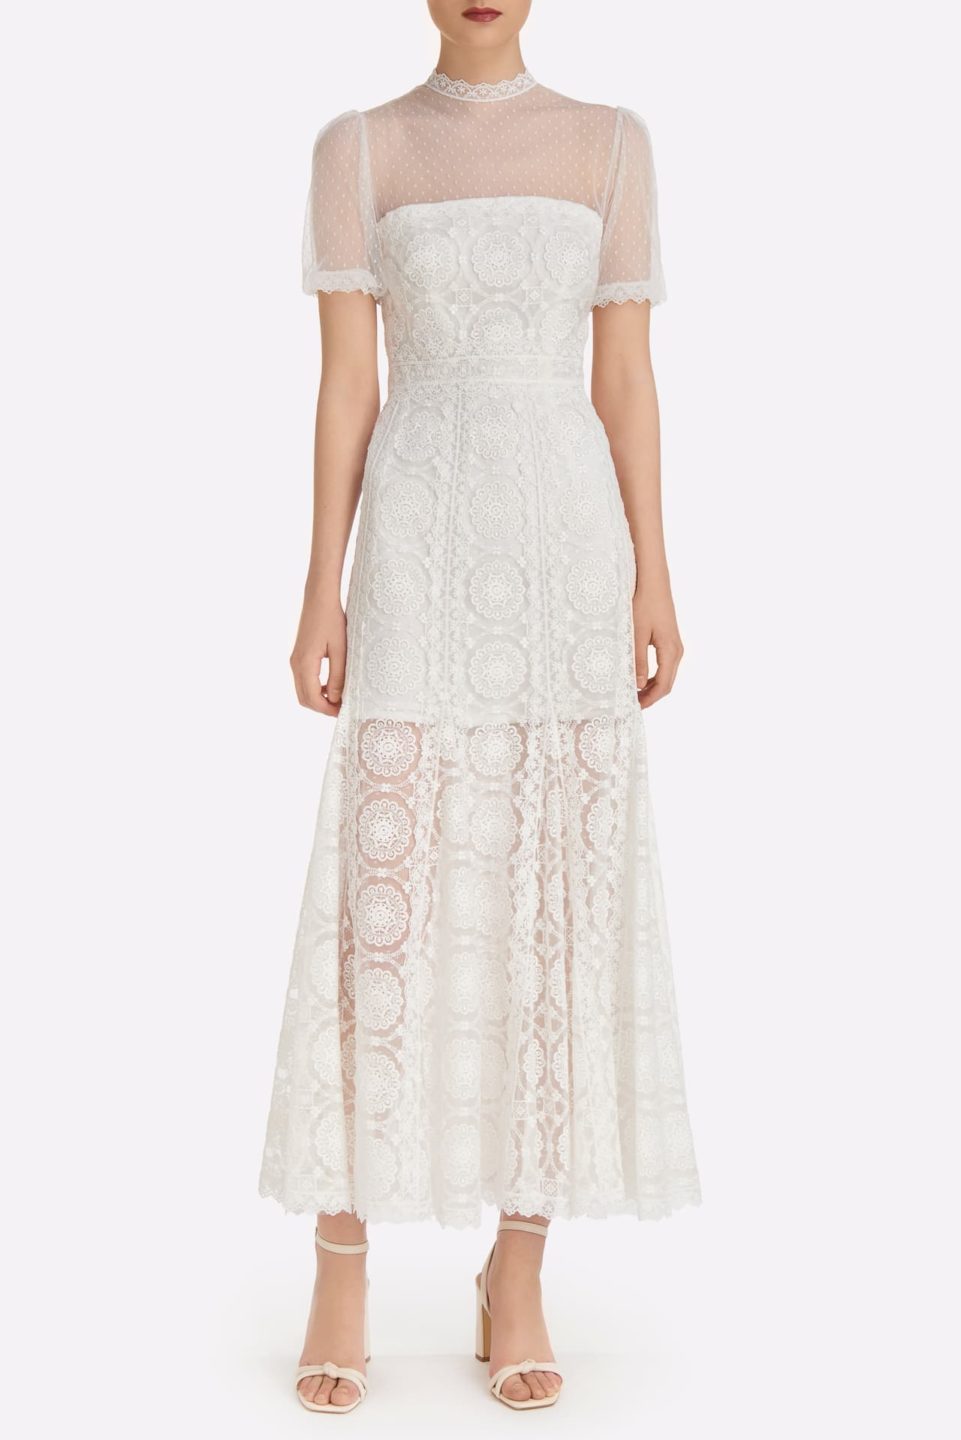 Andressa SS2139 White Embroidered Rosetta French Tulle Godet Dress with Illusion Neckline and puff Sleeves